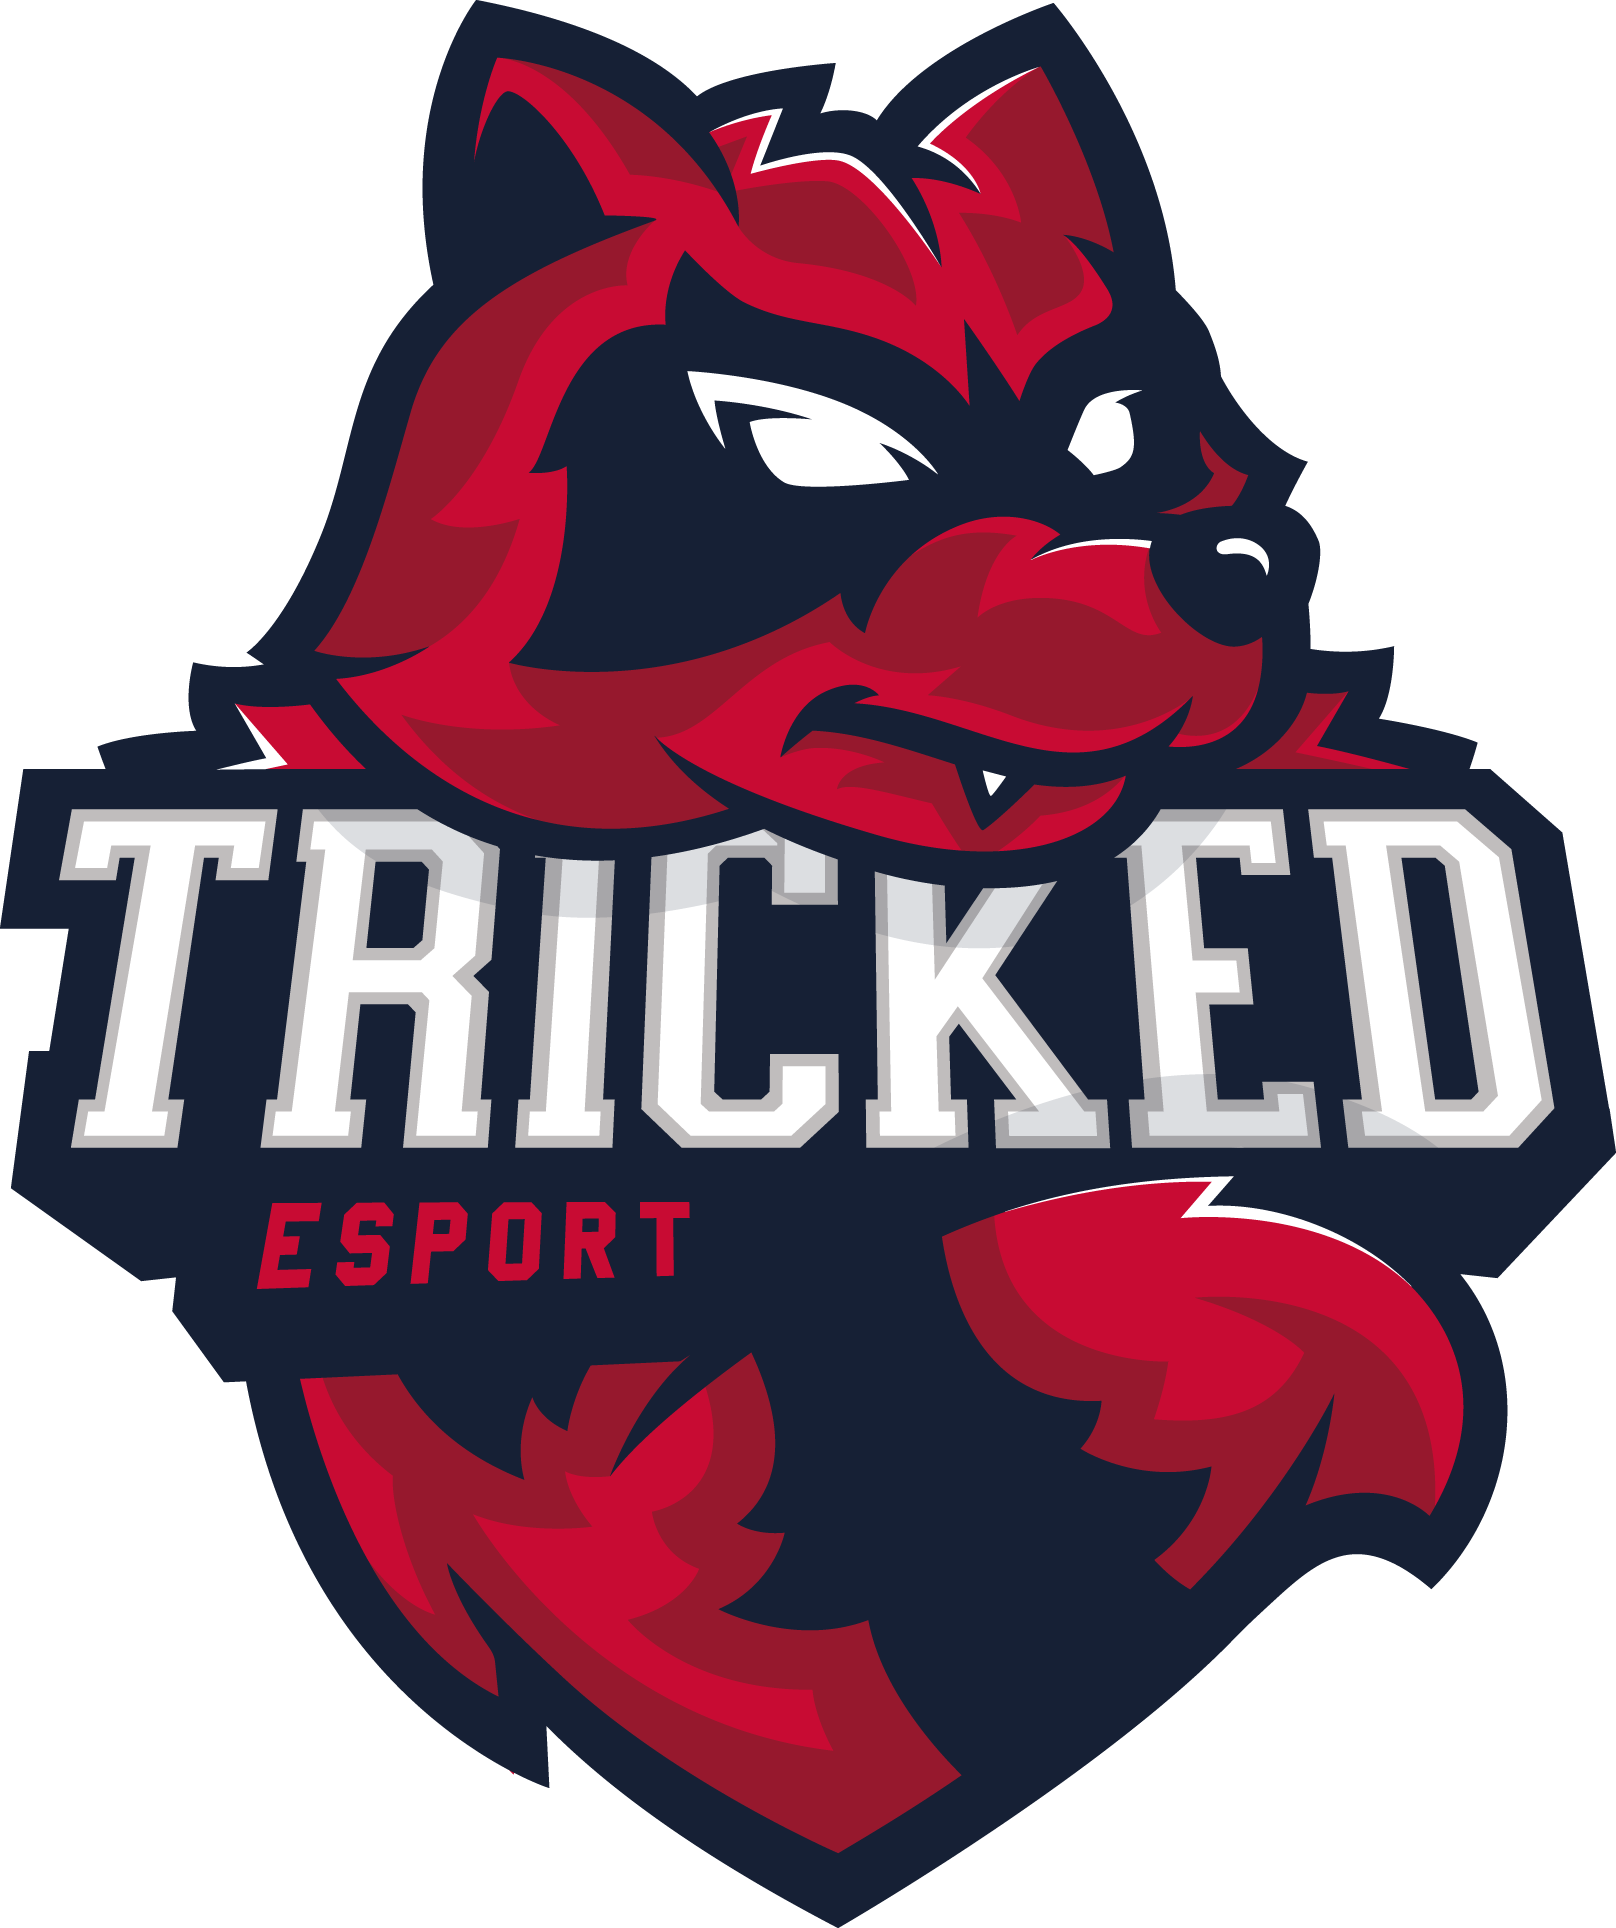 Tricked Esport CS:GO